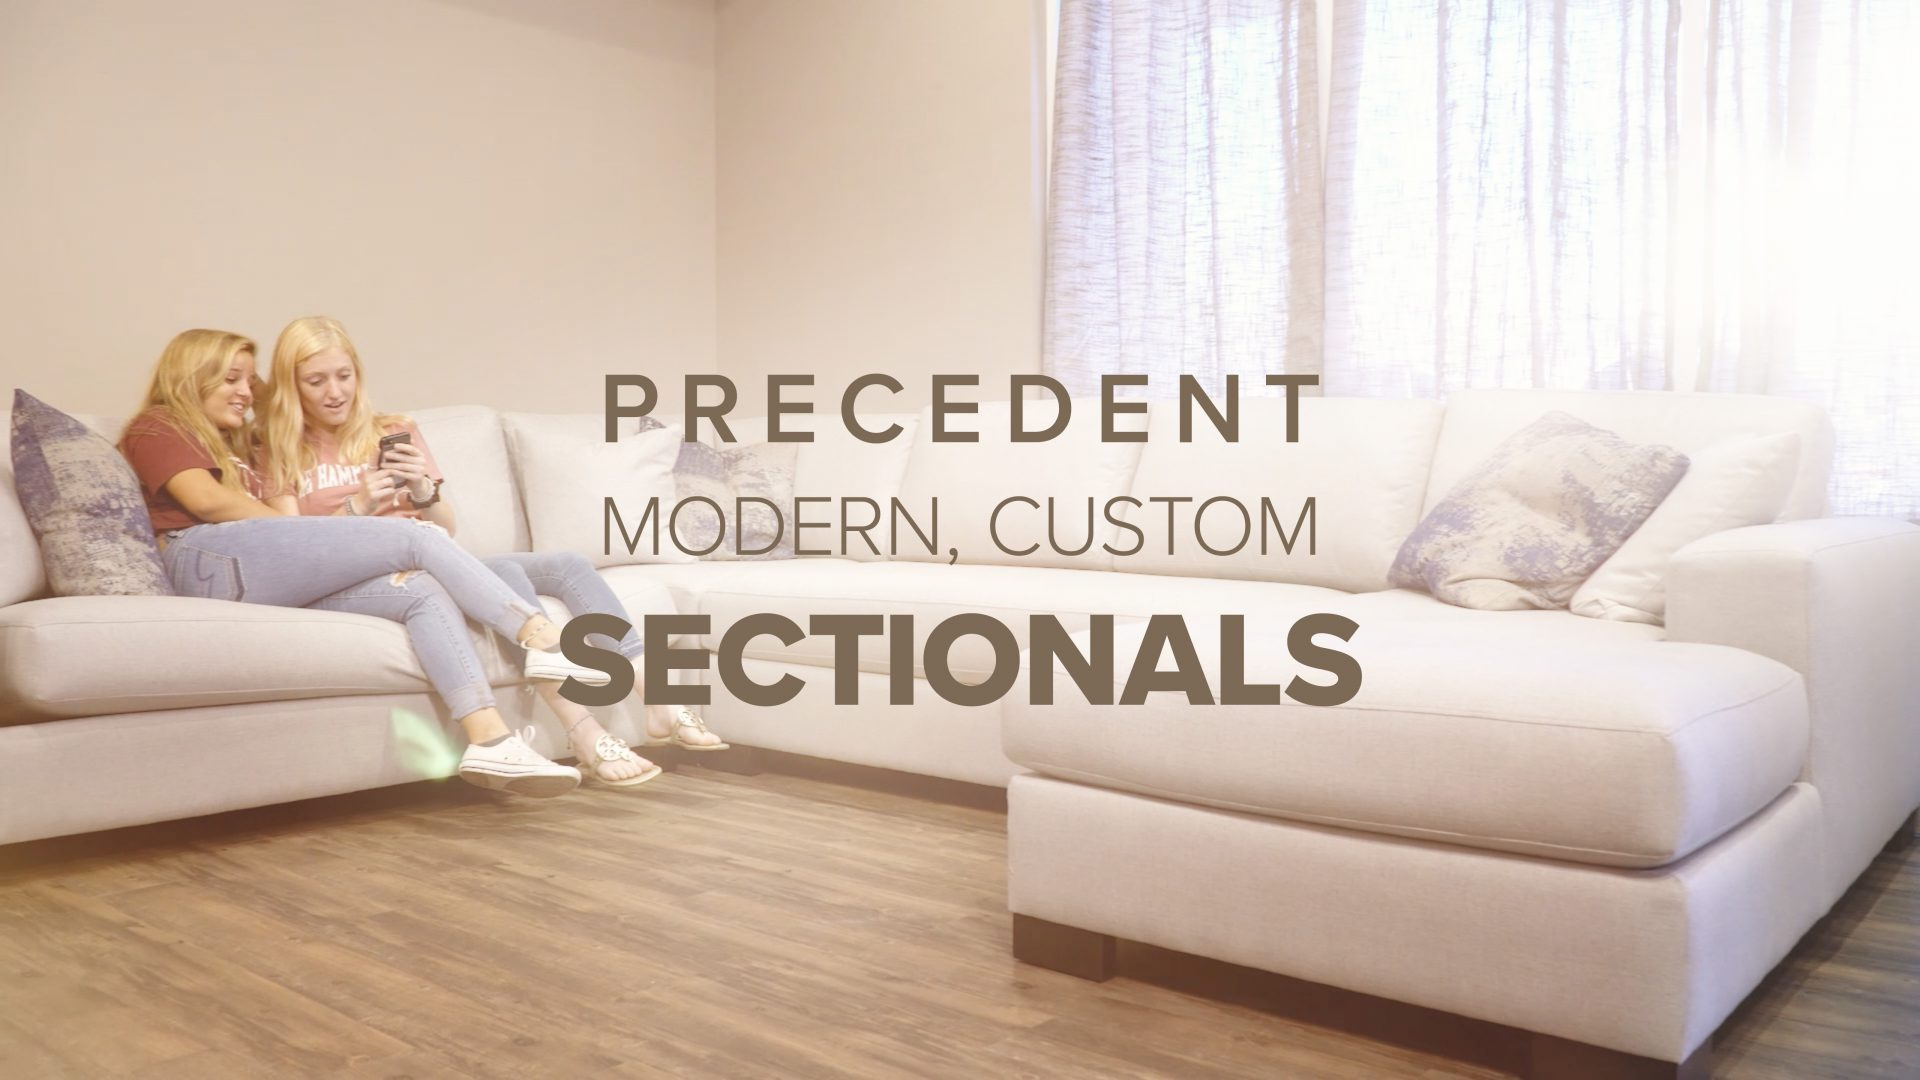 Precedent modern, custom sofa sectionals